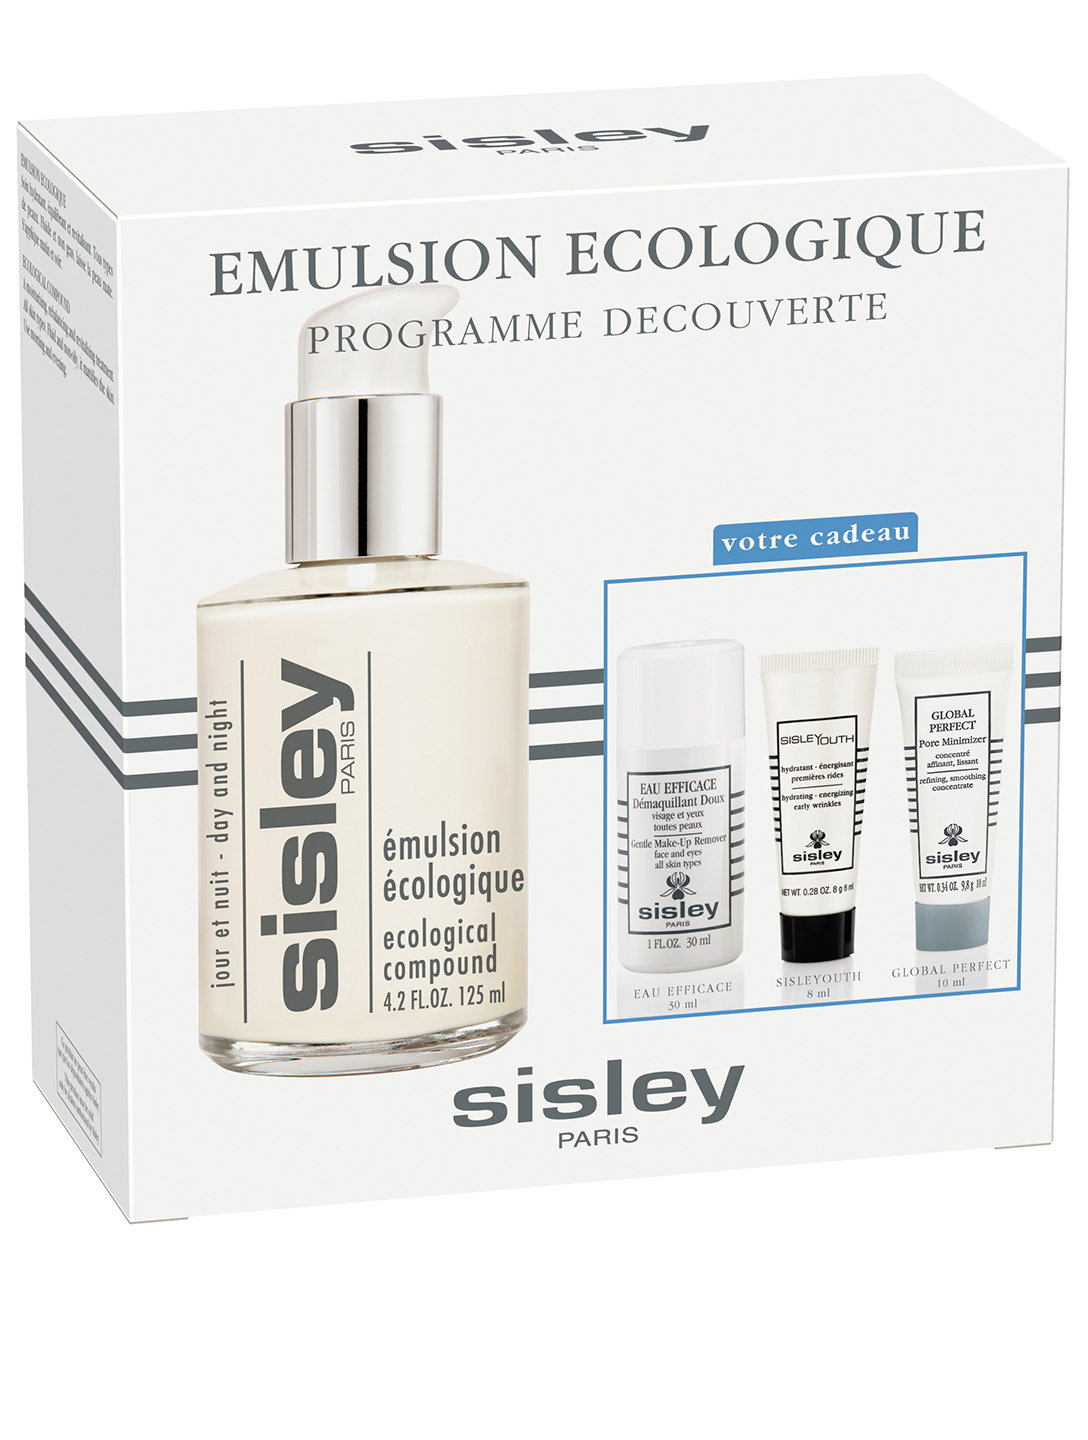 SISLEY-PARIS Ecological Compound Discovery Program Beauty